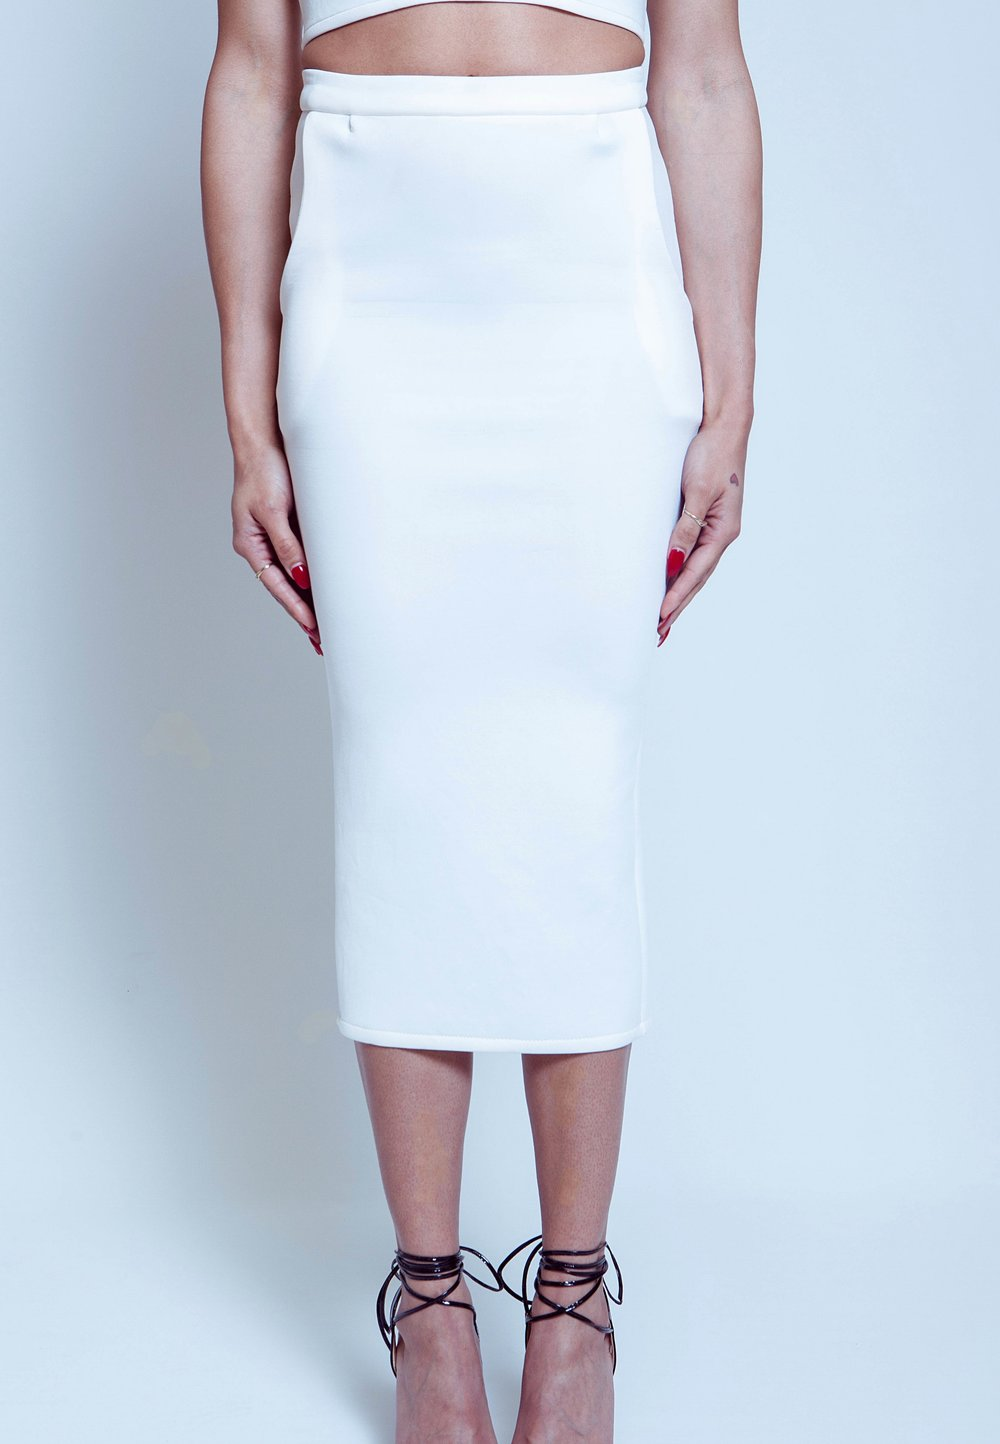 White Lotus Skirt - An edgy yet classic look...